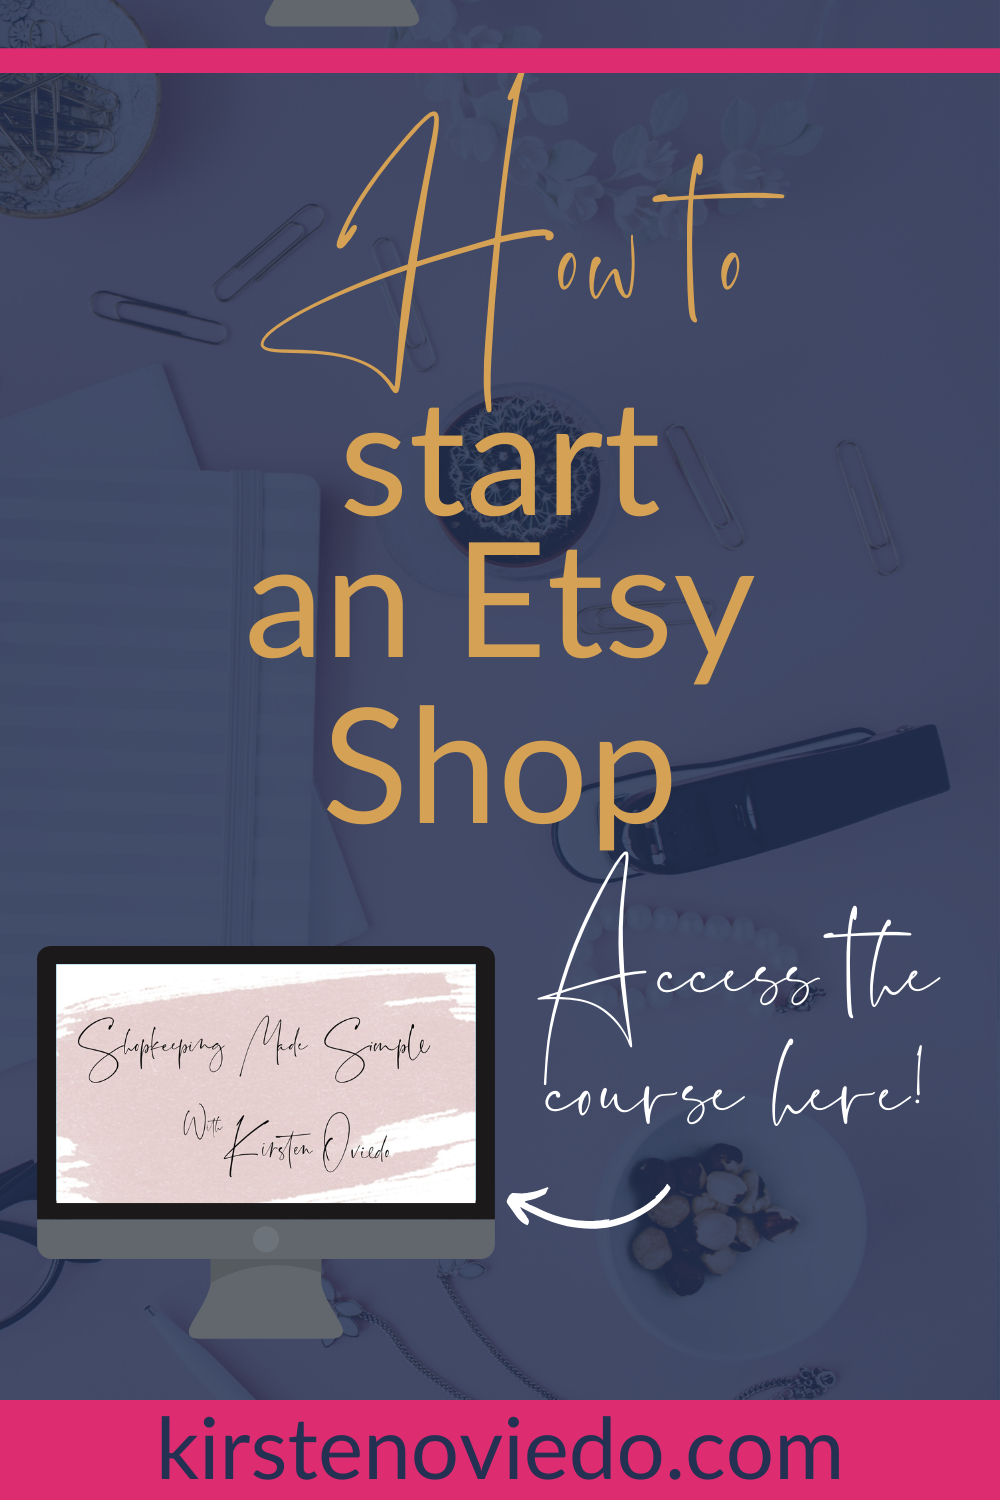 How to start an Etsy Business - Shopkeeping made simple5